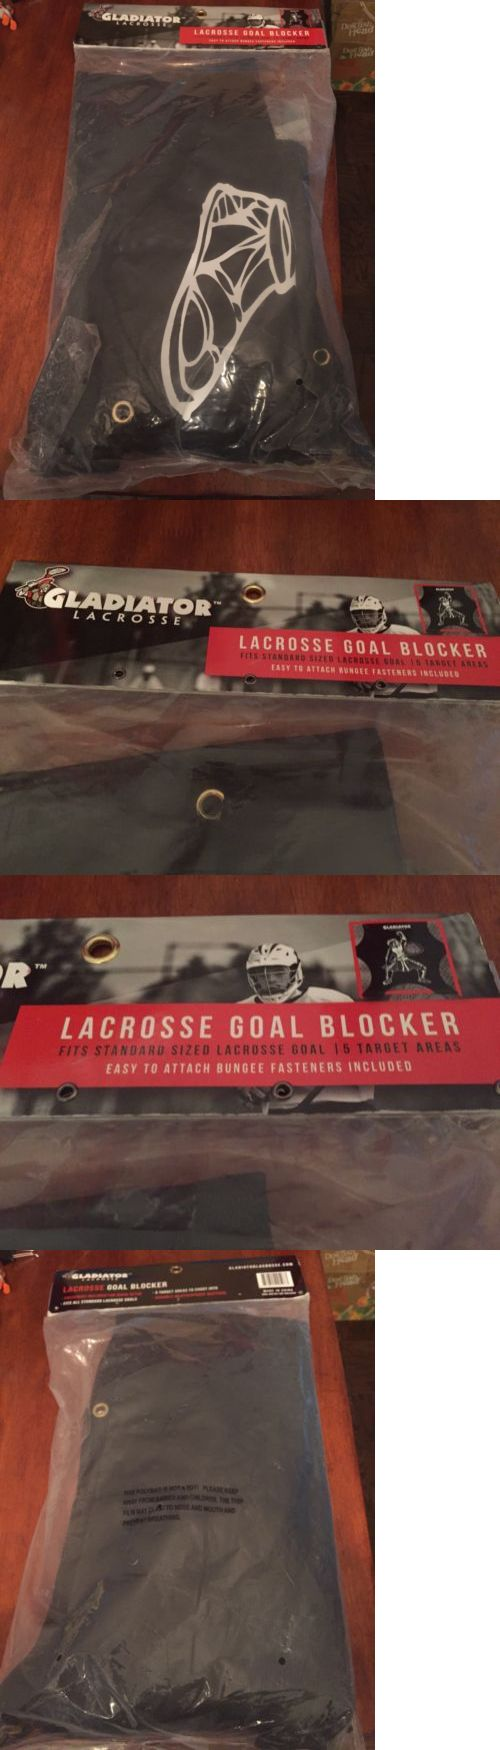 605 best other lacrosse 16043 images on pinterest